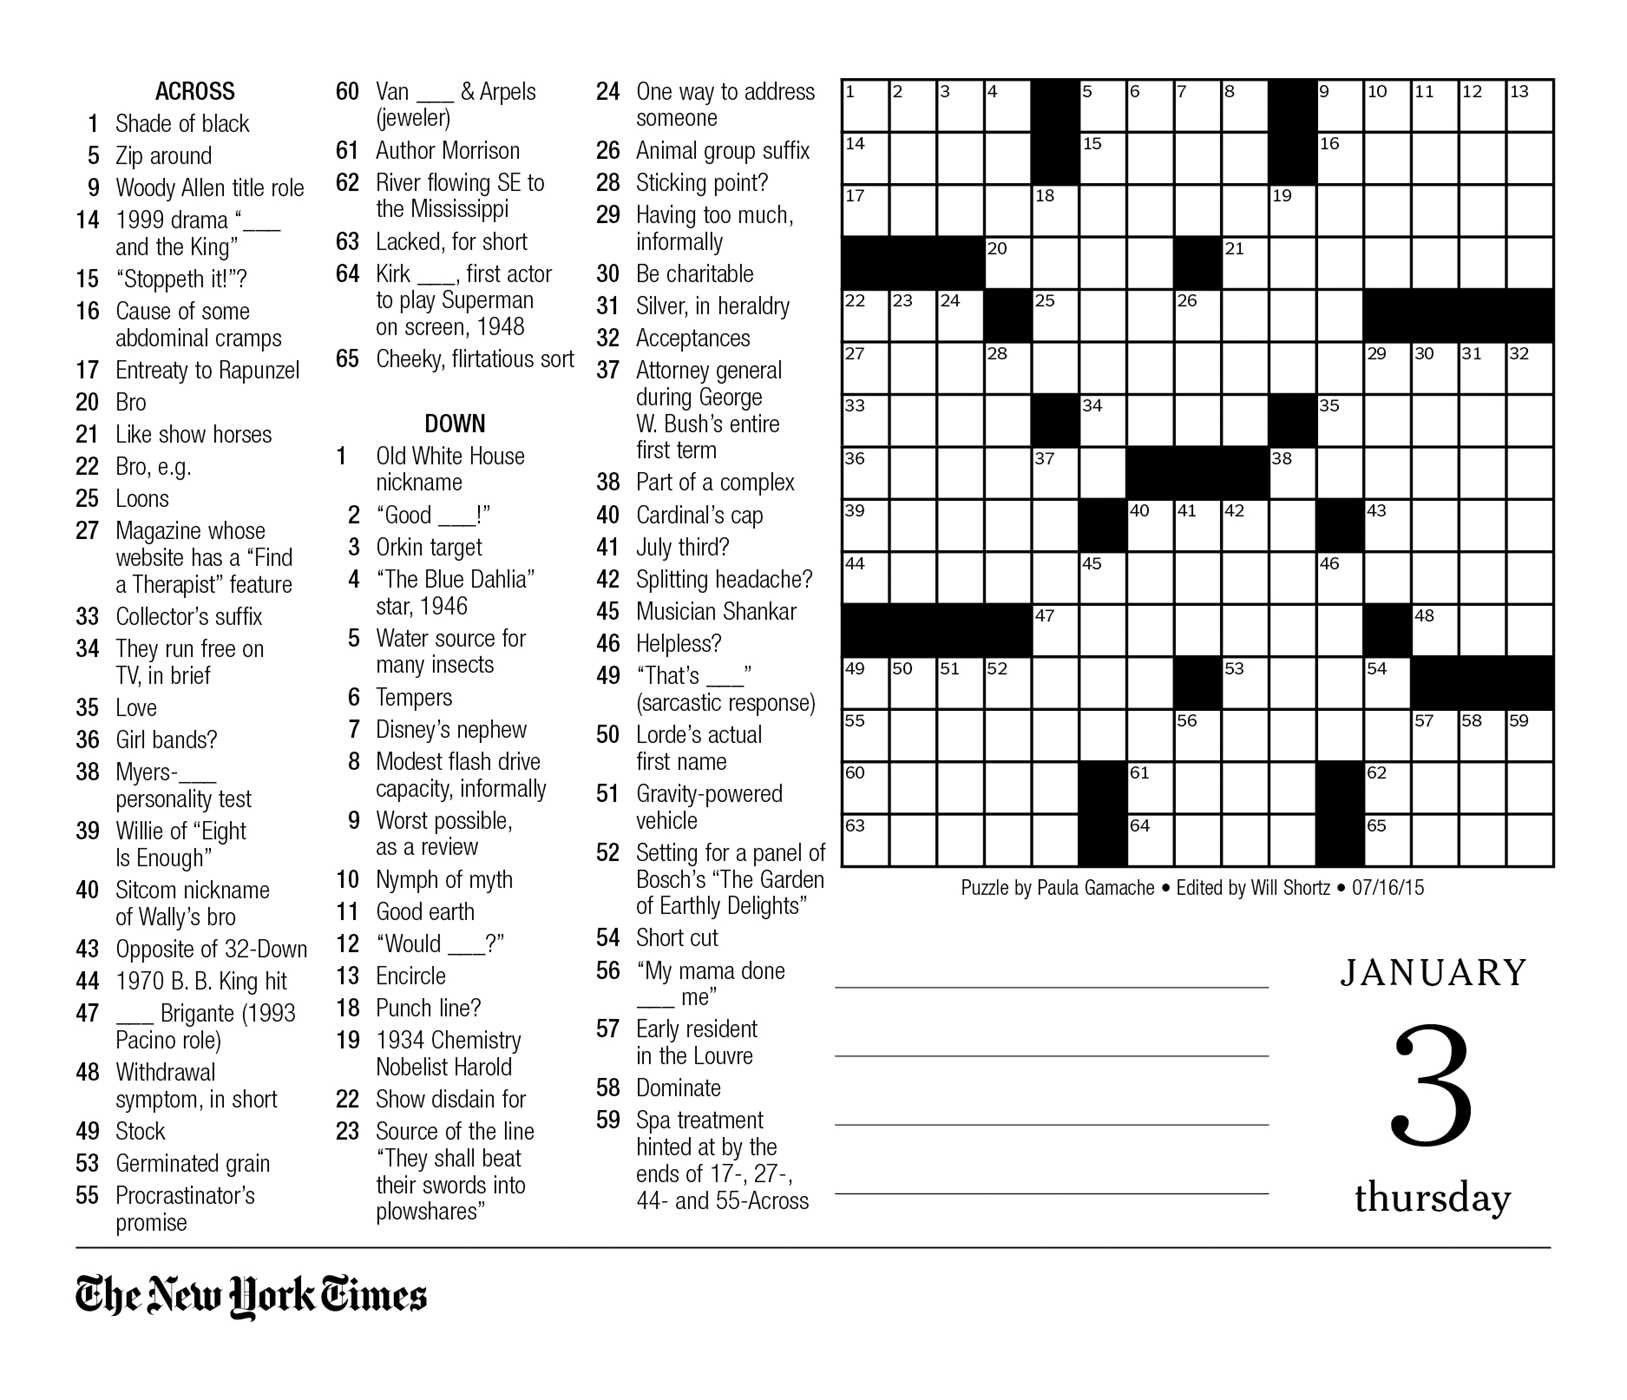 image about Ny Times Sunday Crossword Printable named The Clean York Situations Crossword Puzzles 2019 Working day-in the direction of-Working day